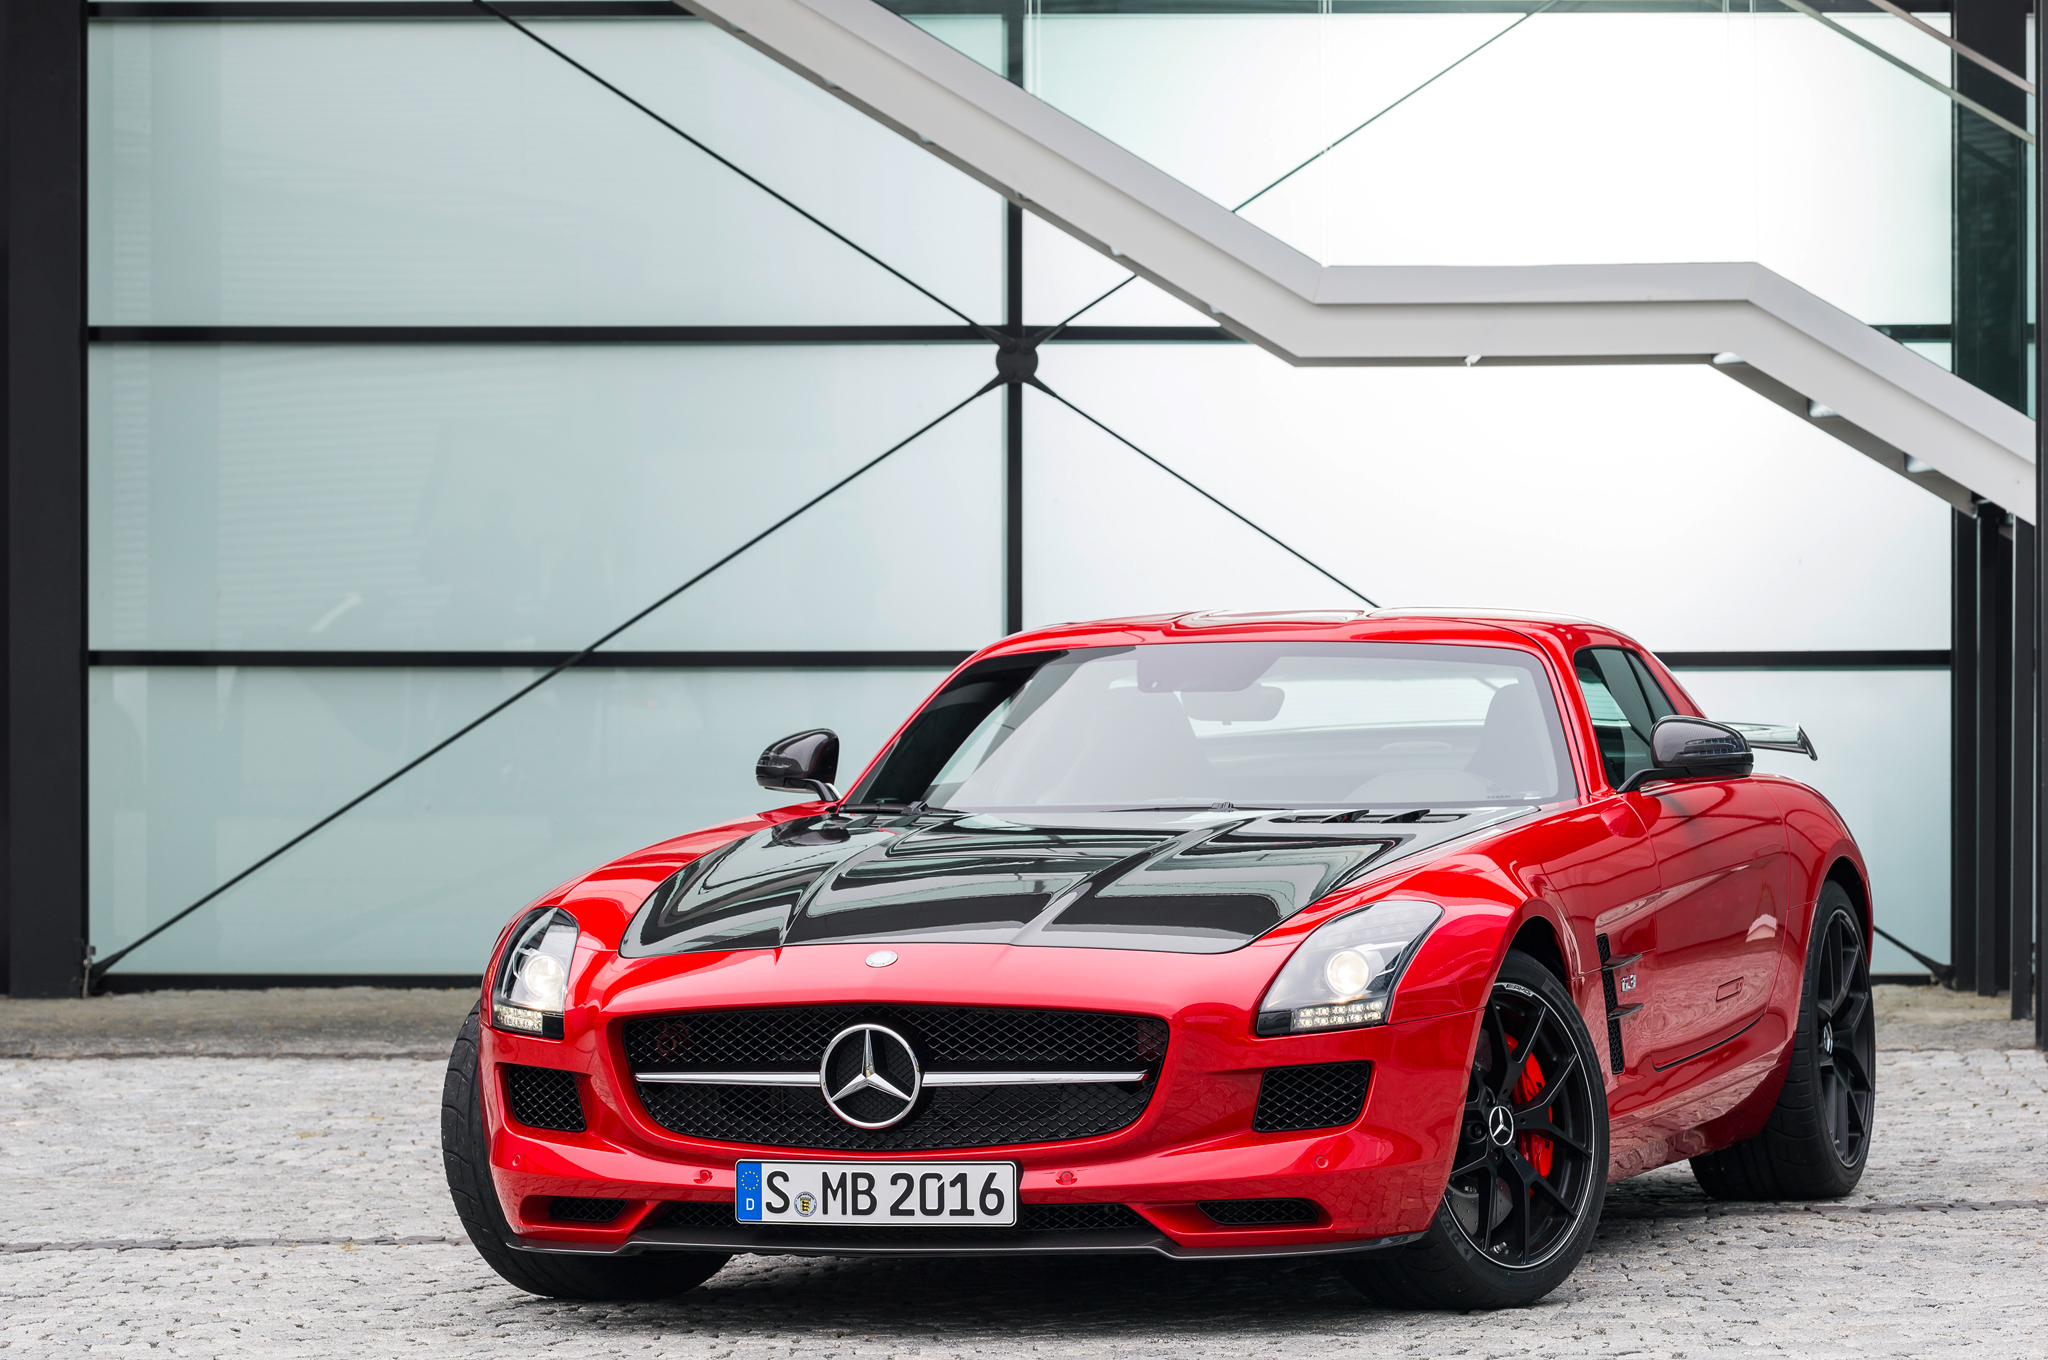 2015 Mercedes-Benz Sls Amg Gt Final Edition #3